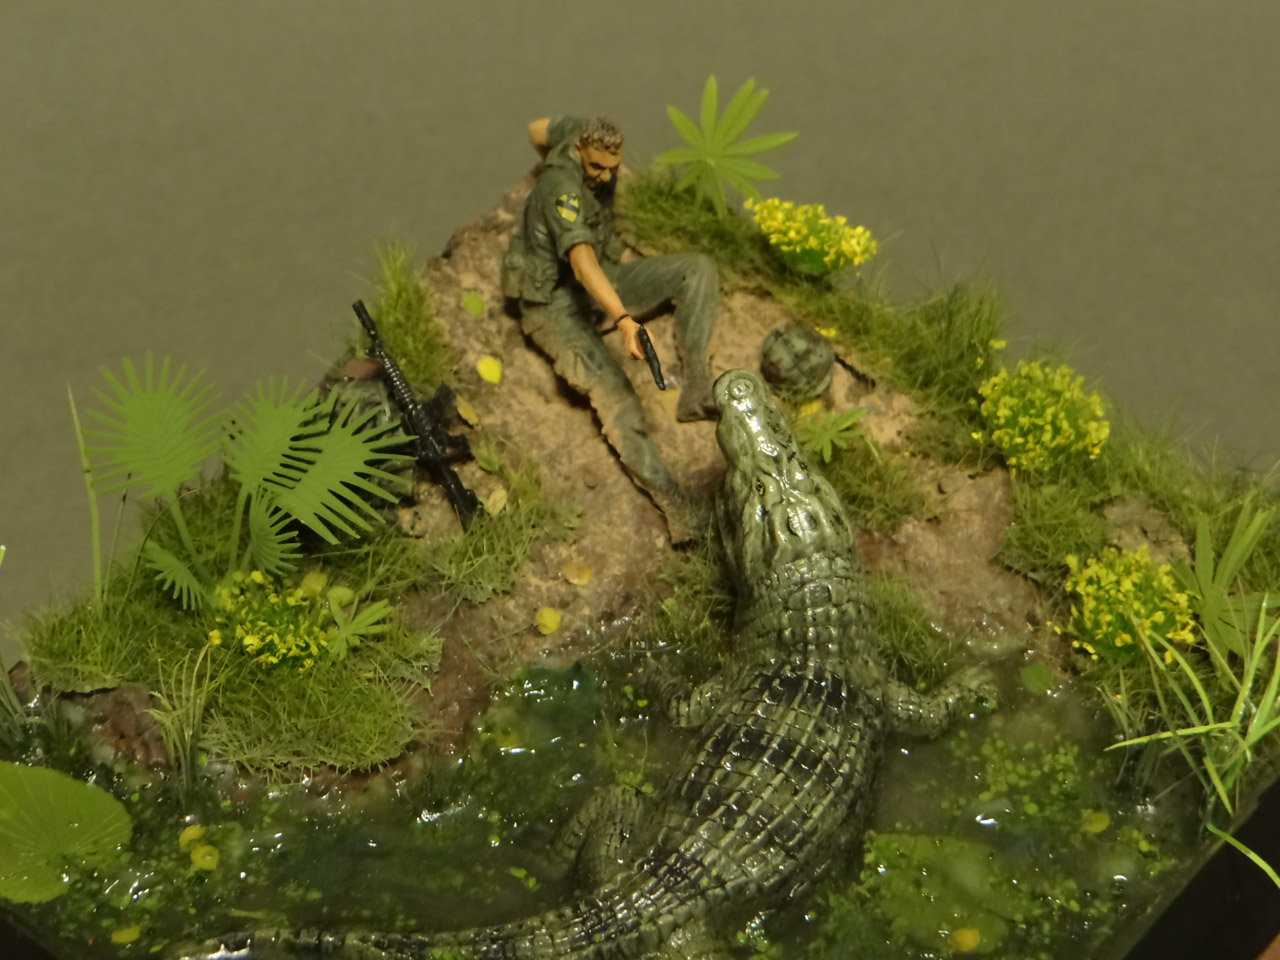 Dioramas and Vignettes: Wild world, photo #3